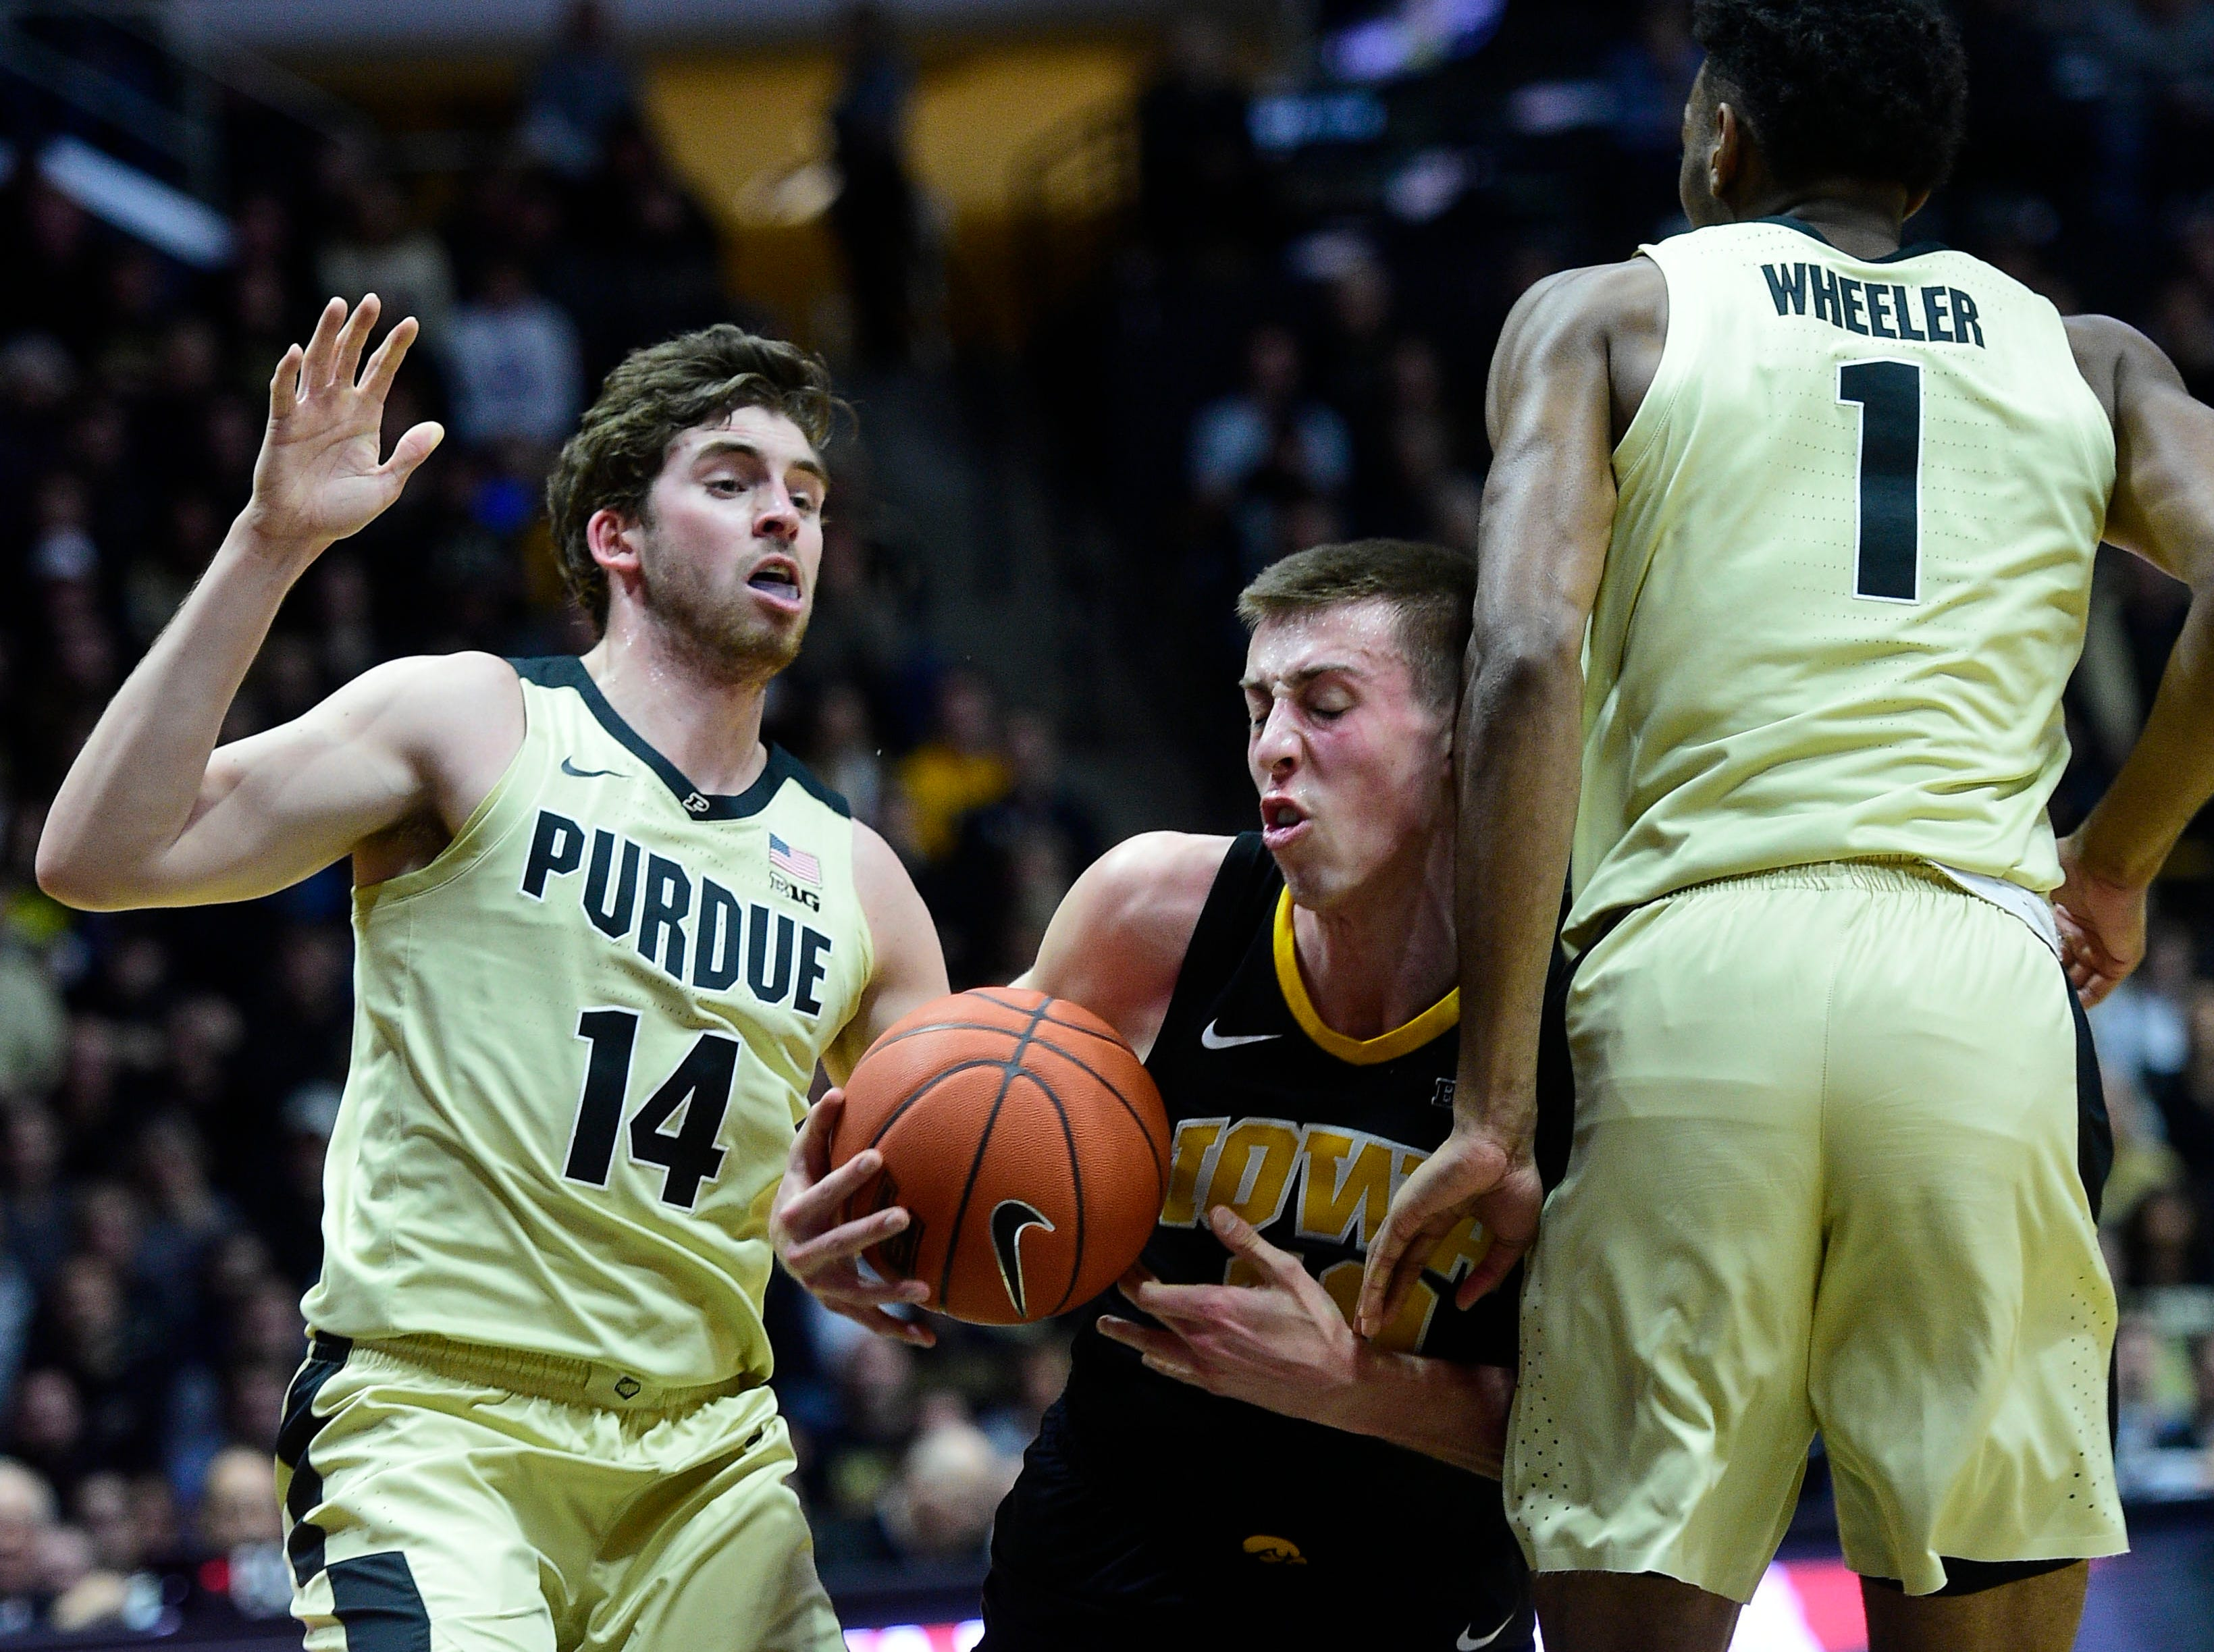 Jan 3, 2019; West Lafayette, IN, USA;  Iowa Hawkeyes guard Joe Weiskamp  (10) drives between Purdue Boilermakers guard Ryan Cline (14) and forward Aaron Wheeler (1) in the first half at Mackey Arena. Mandatory Credit: Thomas J. Russo-USA TODAY Sports